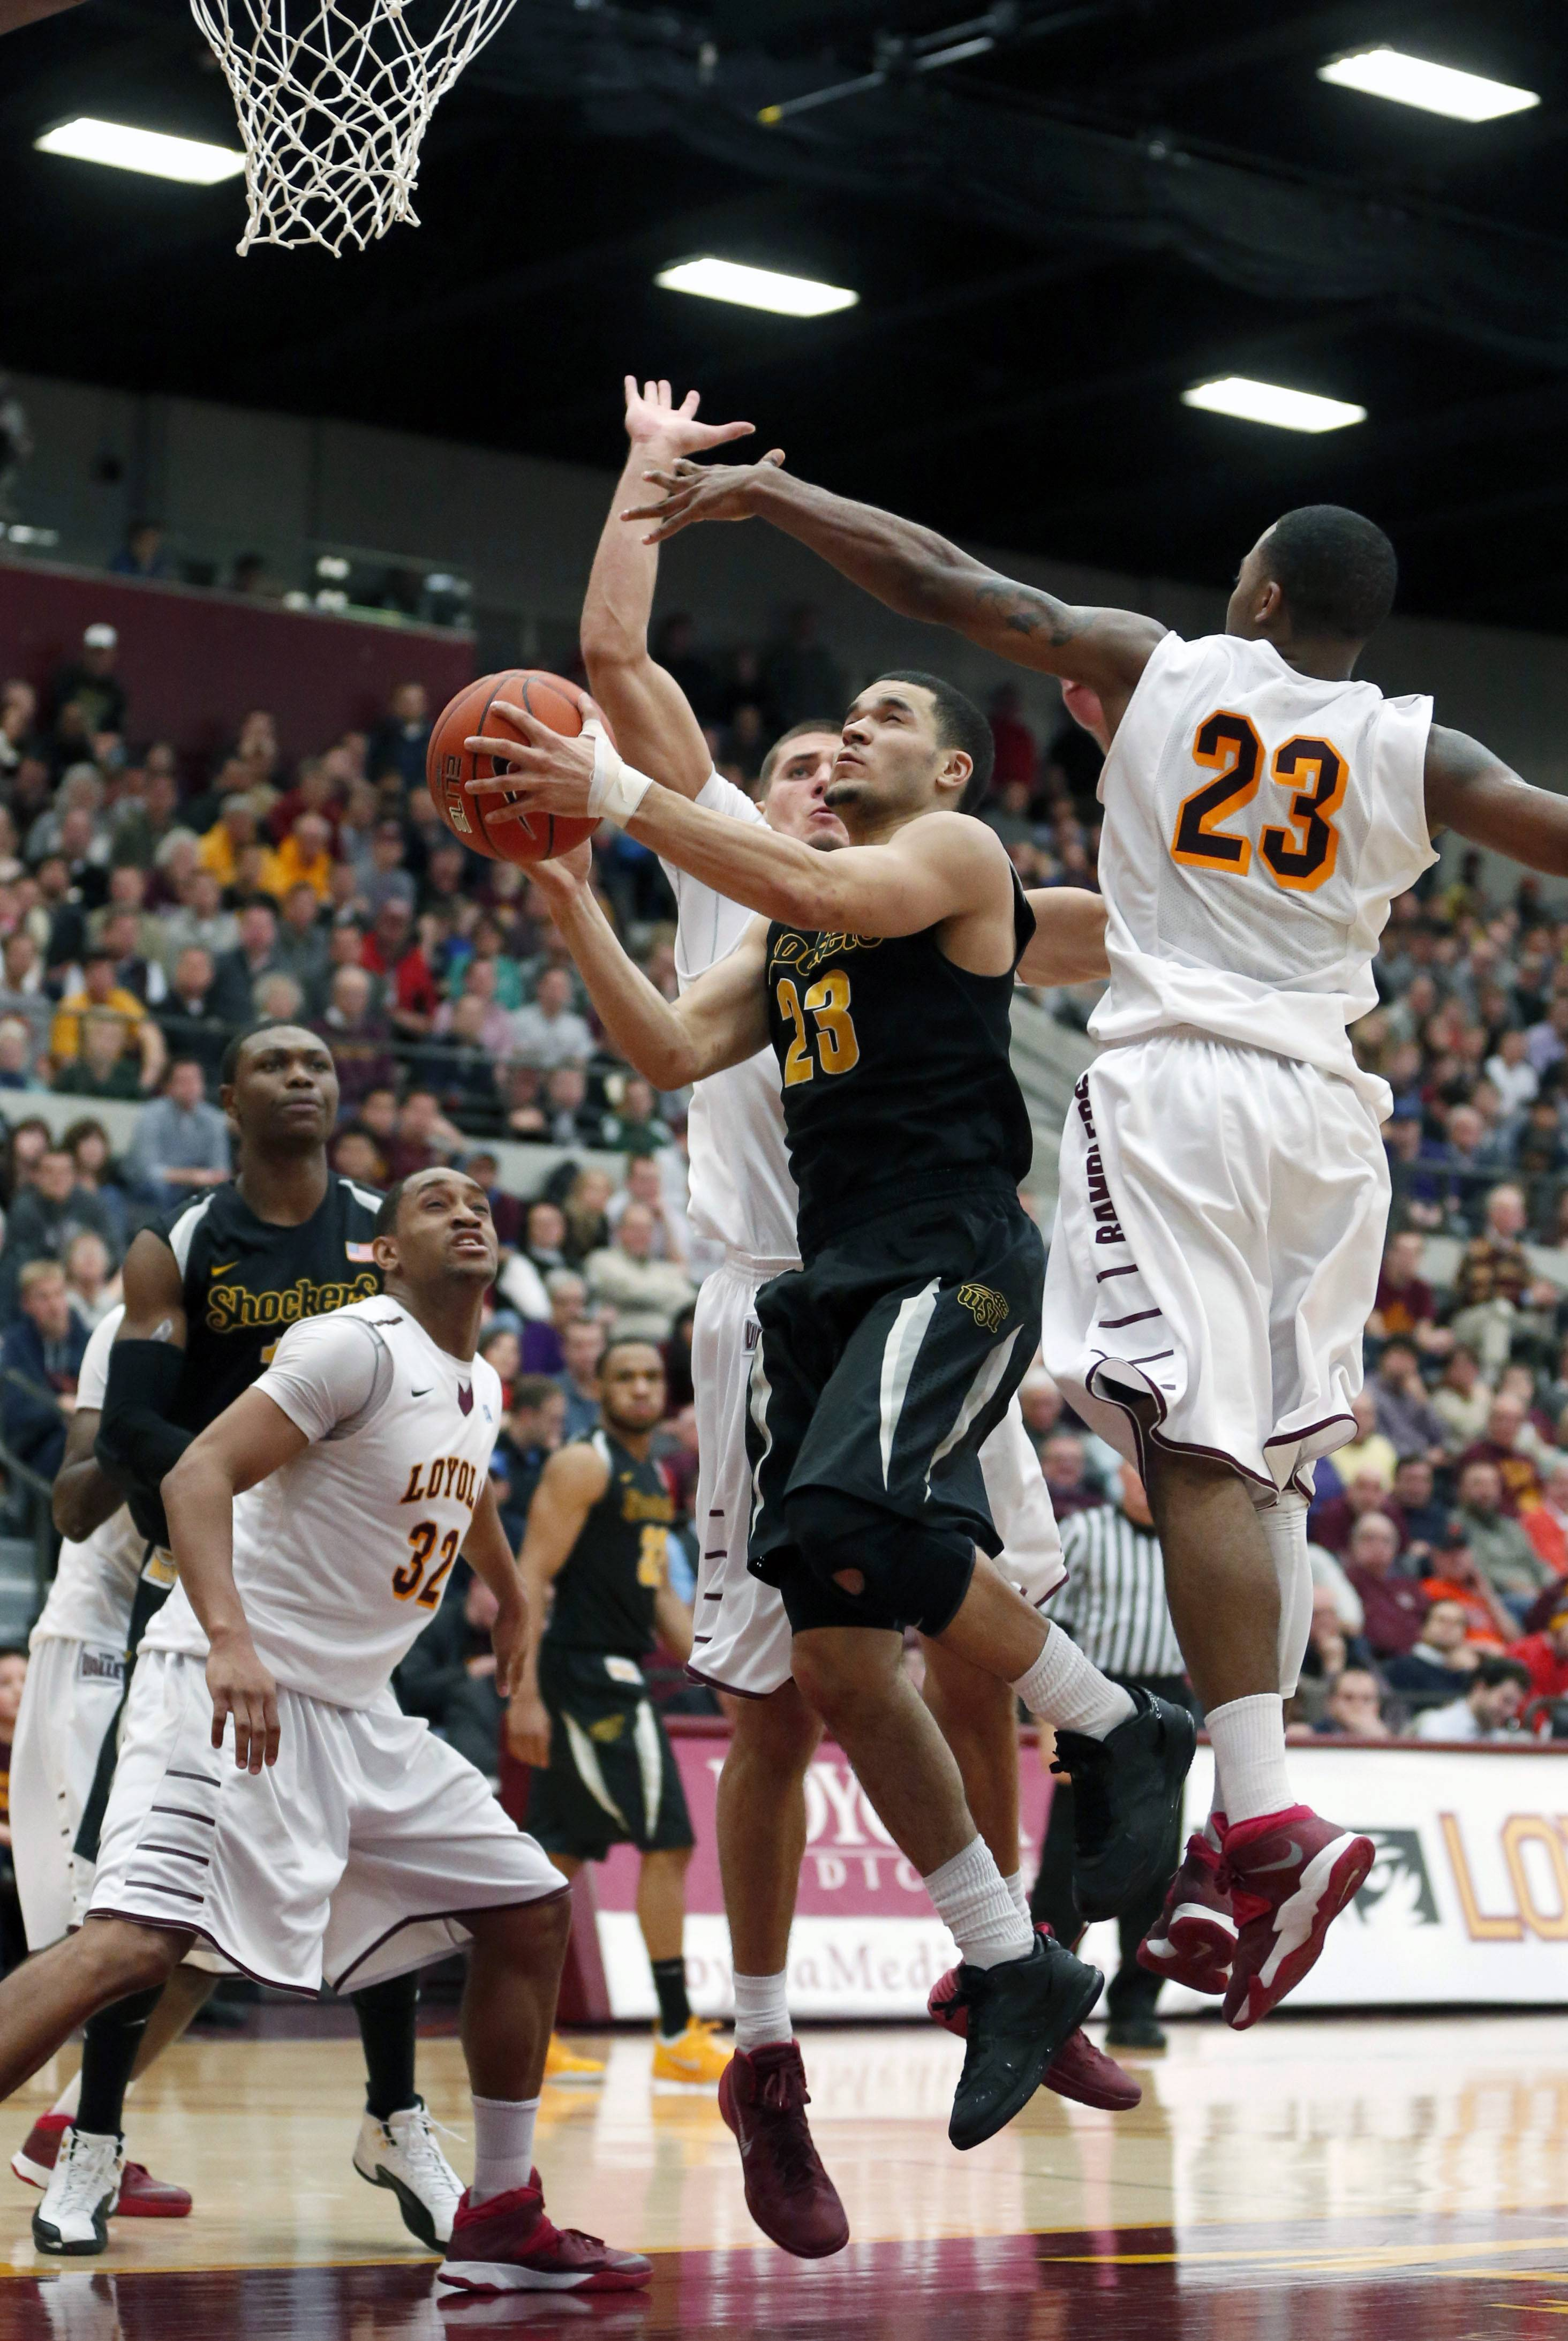 Wichita State guard Fred VanVleet (23) scores between Loyola of Chicago guard Christian Thomas (32) Nick Osborne, behind and Jeff White during the second half of an NCAA college basketball game Wednesday, Feb. 19, 2014, in Chicago. Wichita State won 88-74.